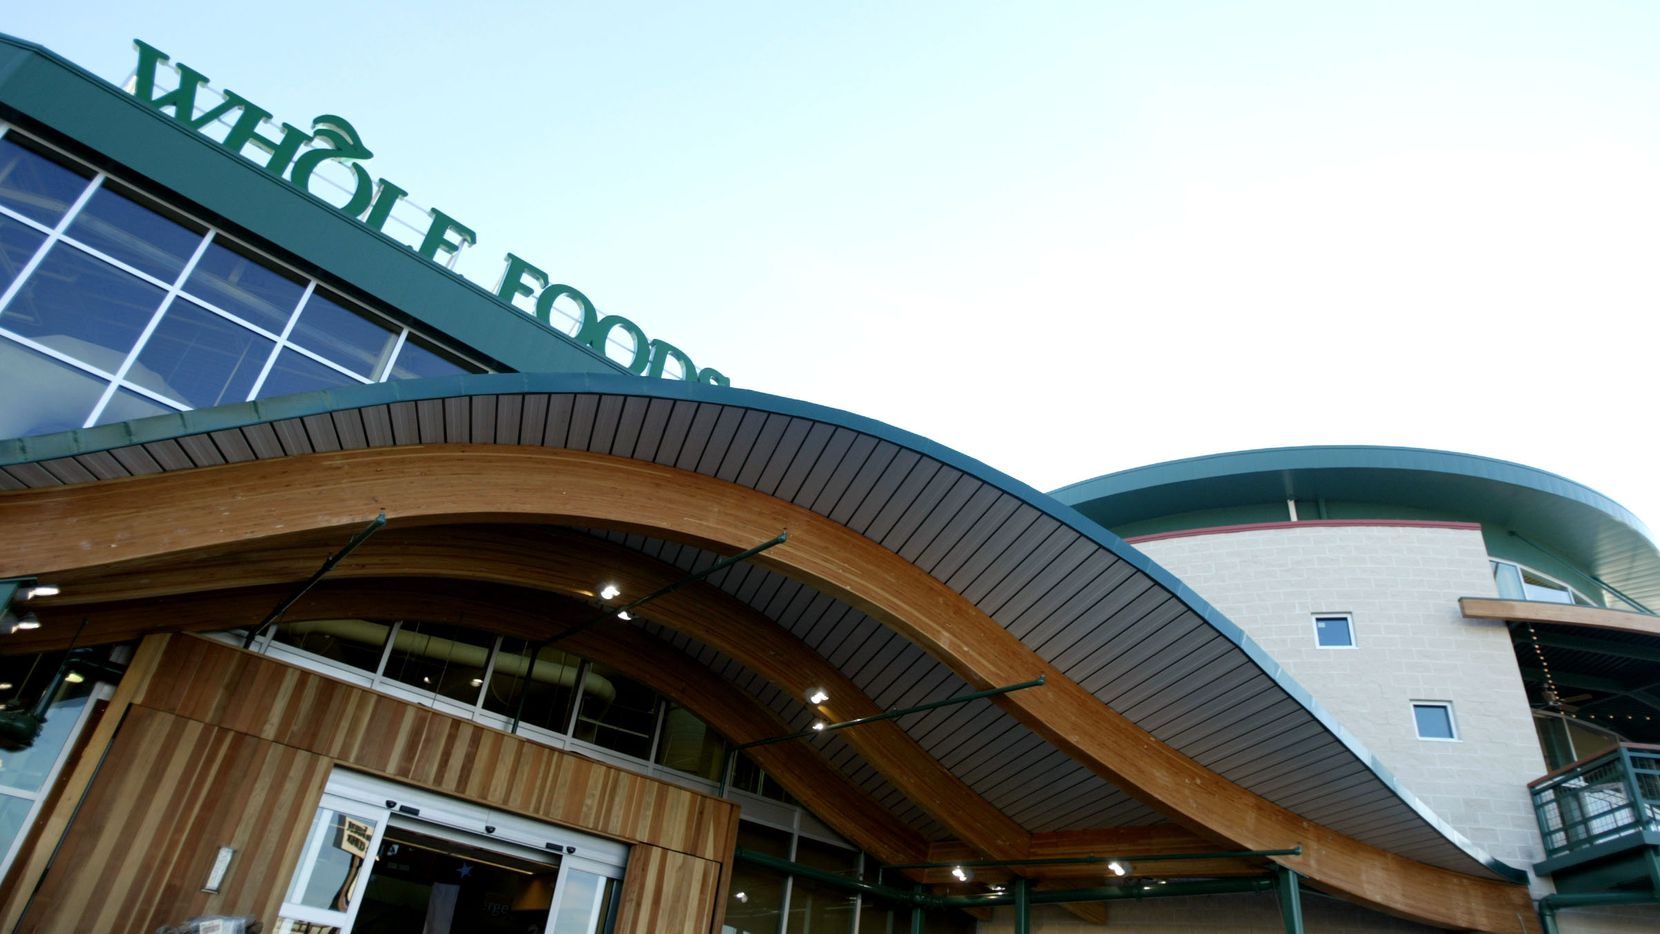 Preston Forest Shopping Center is anchored by Whole Foods Market.